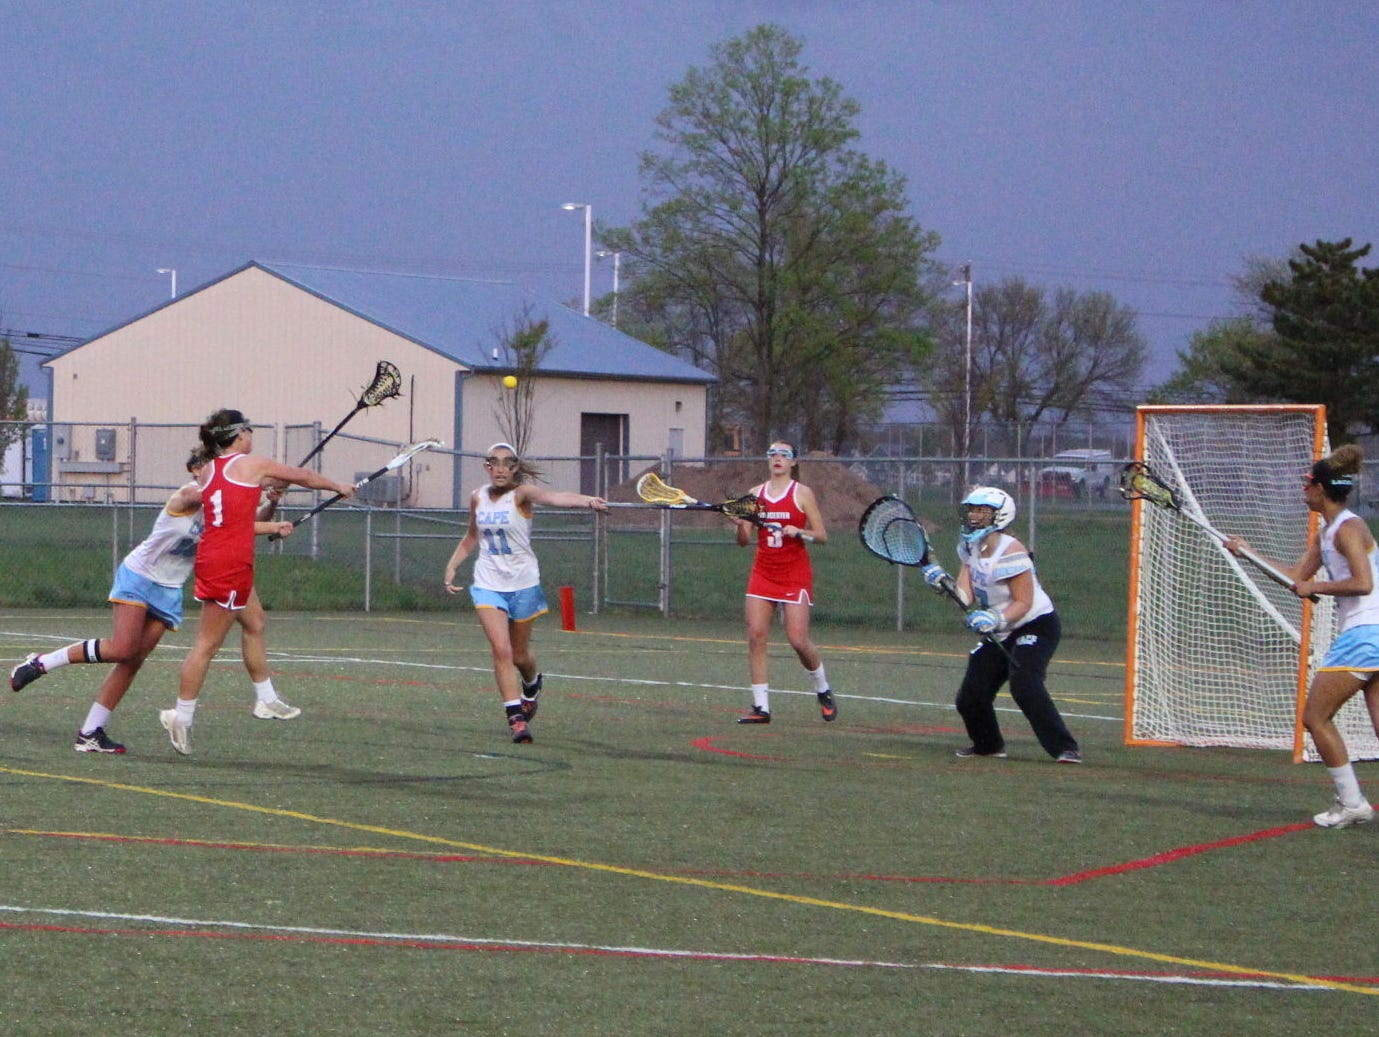 Worcester Prep's Sophie Brennan (1) shoots and scores past Cape Henlopen goalkeeper Sam Broadhurst for one of her five goals. Prep came back to win 14-13 in double overtime at Cape on Wednesday.